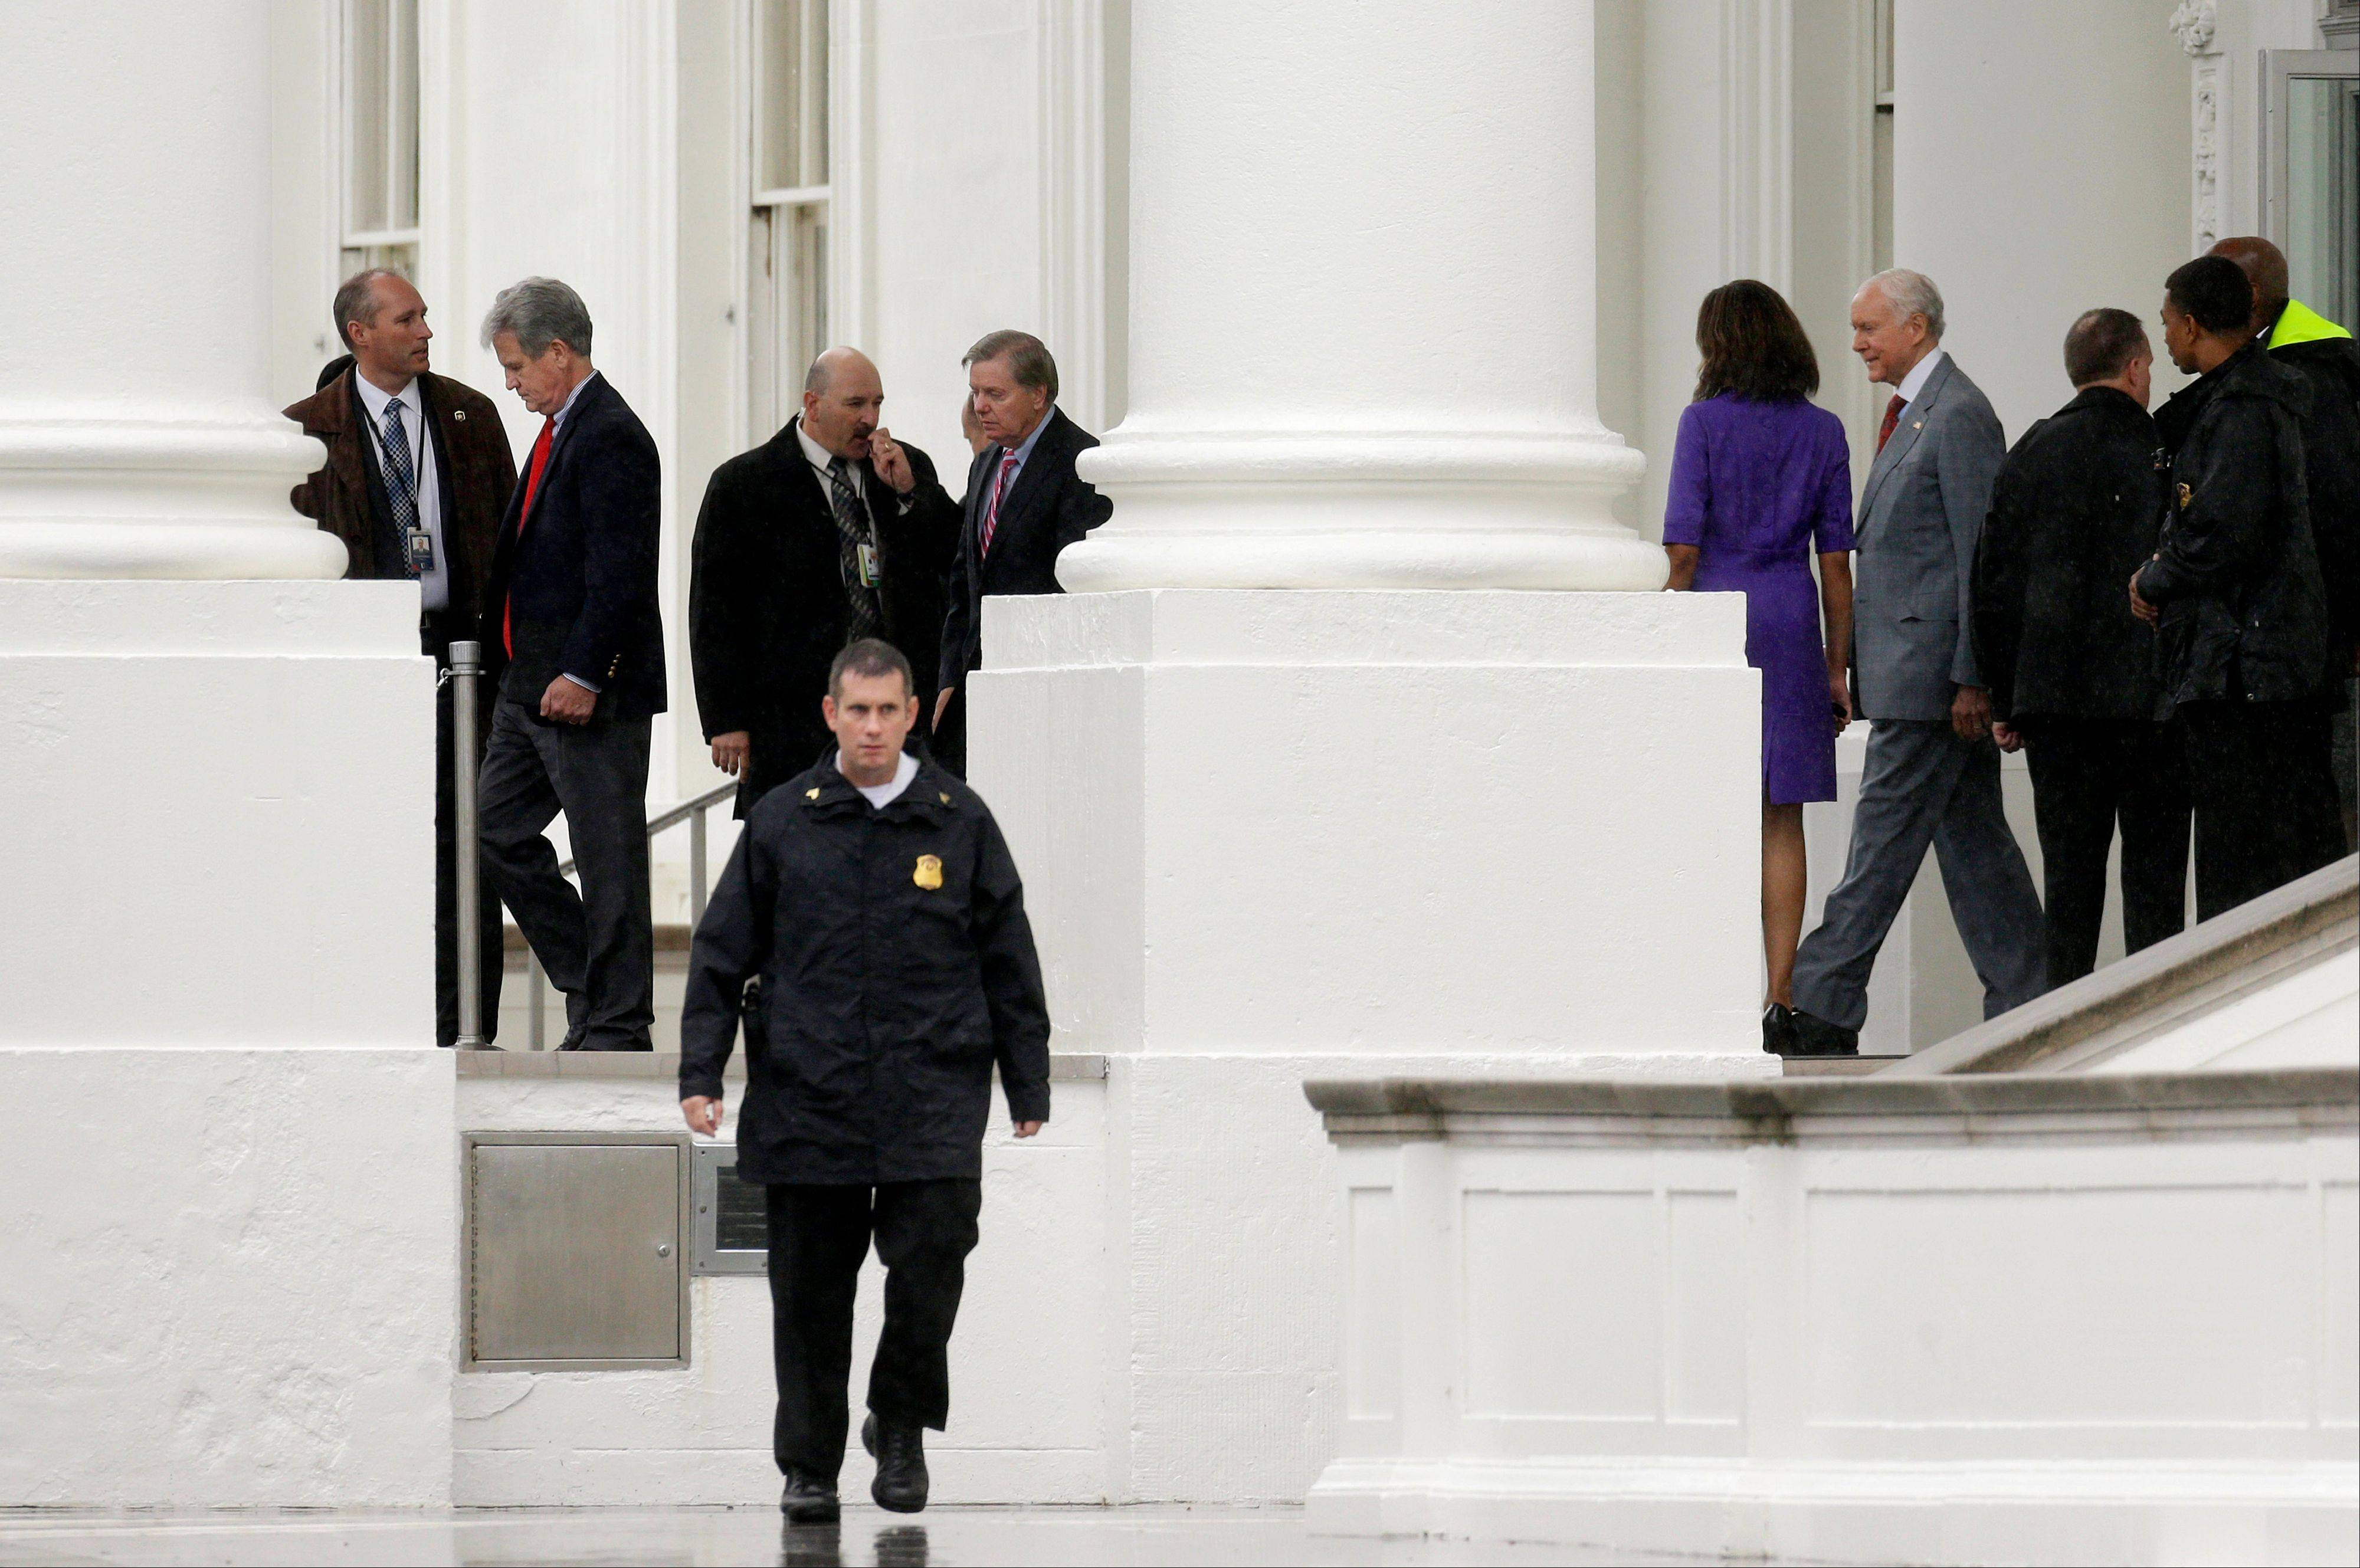 Associated PressRepublican senators, from left, Tom Coburn of Oklahoma, Lindsey Graham of South Carolina, center, and Orrin Hatch of Utah, leave Friday from the North Portico of the White House in Washington, after meeting with President Barack Obama regarding the government shutdown and debt ceiling.